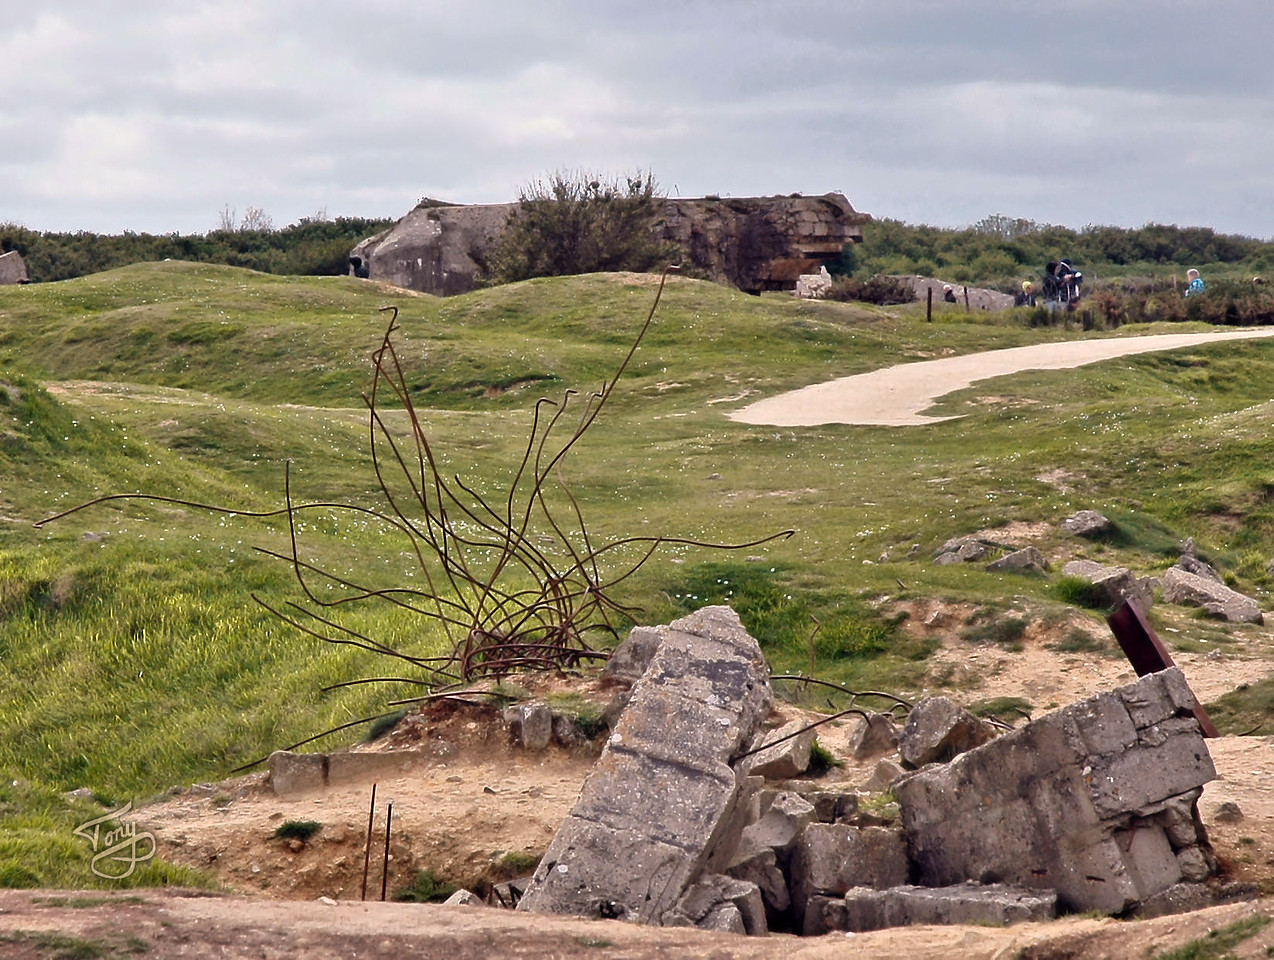 Pointe-du-Hoc 2006 - Study in Broken Stone and Twisted Steel